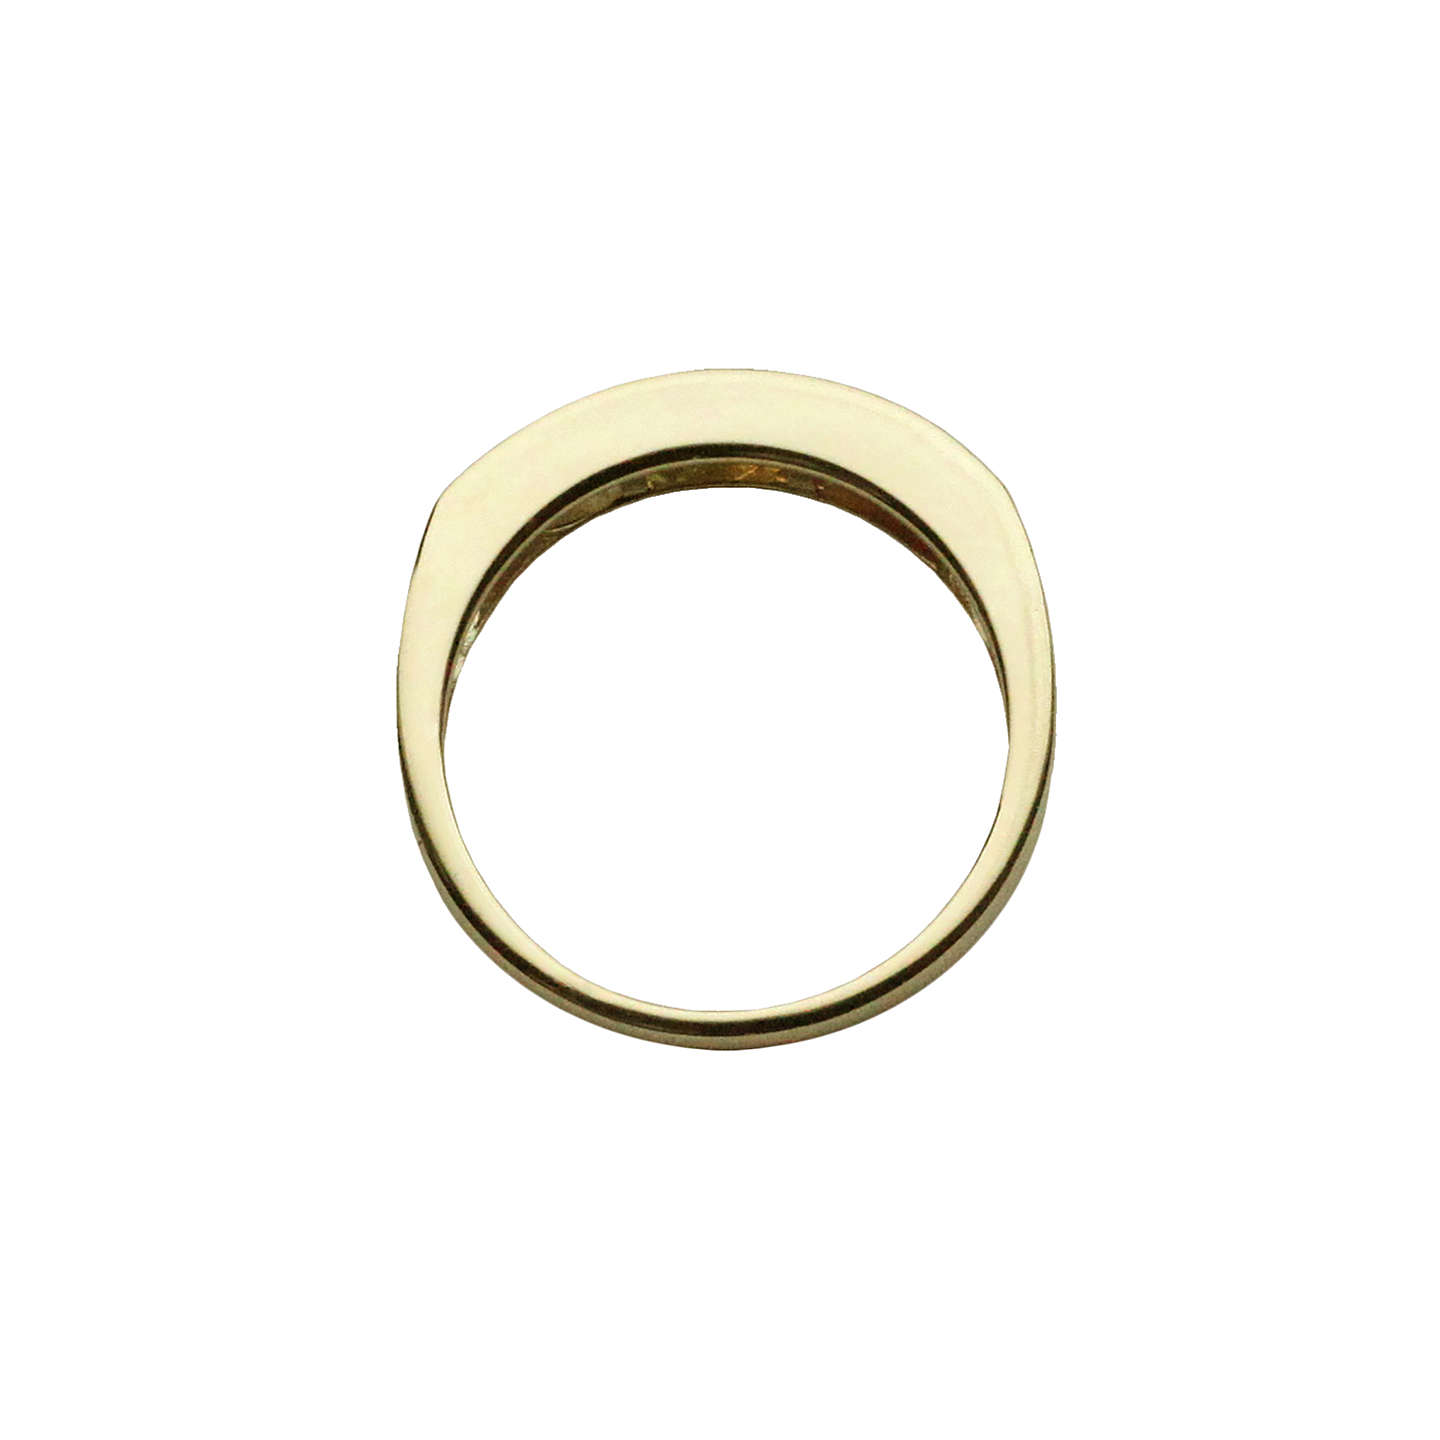 BuyNina B 9ct Gold Princess Cut Semi-Precious Stones Half Eternity Ring, Gold/Multi, M Online at johnlewis.com